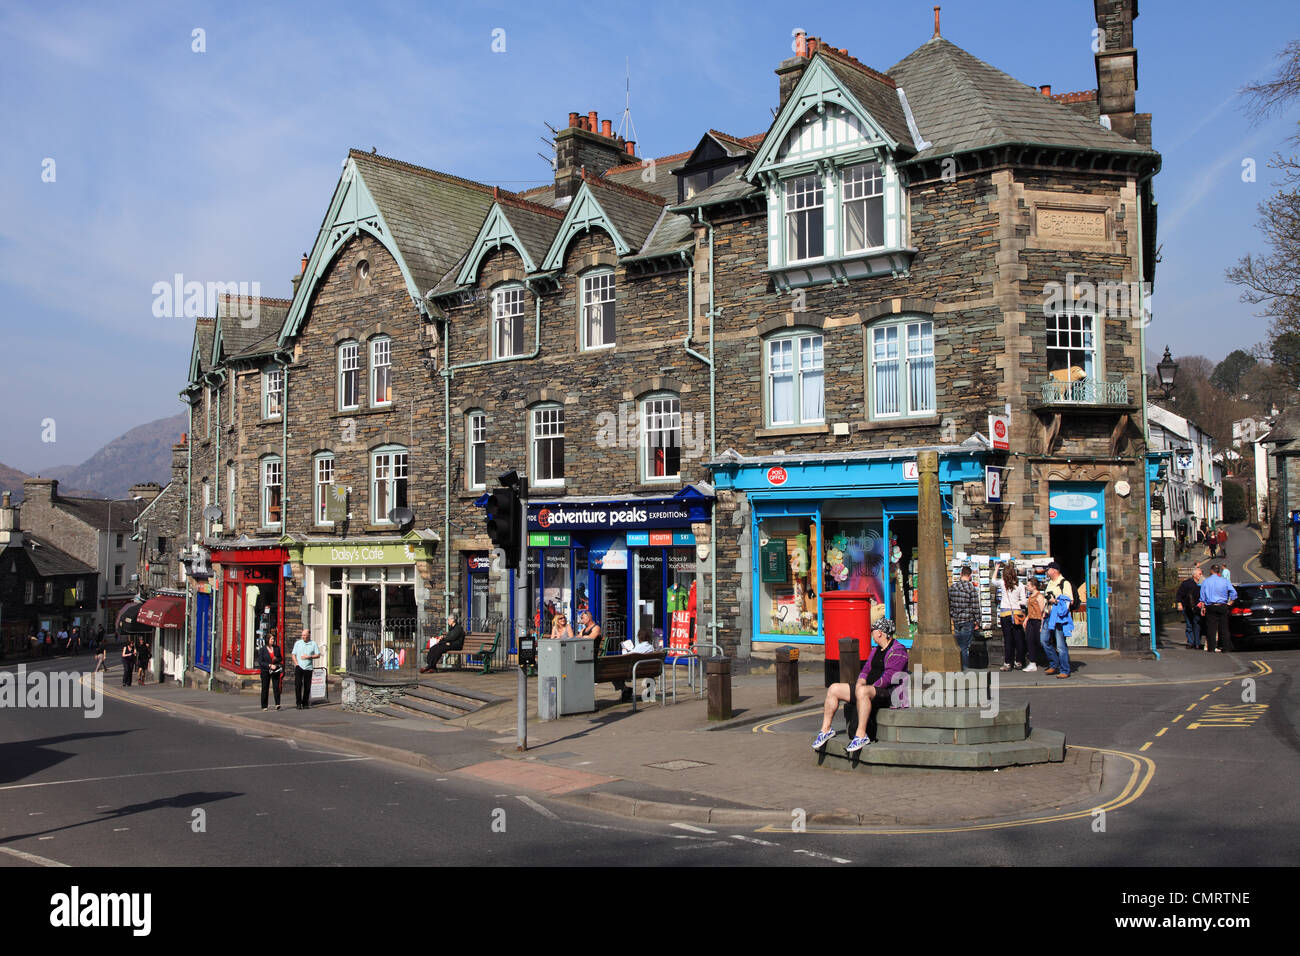 Post office and tourist information centre Central Buildings Ambleside Cumbria England UK - Stock Image